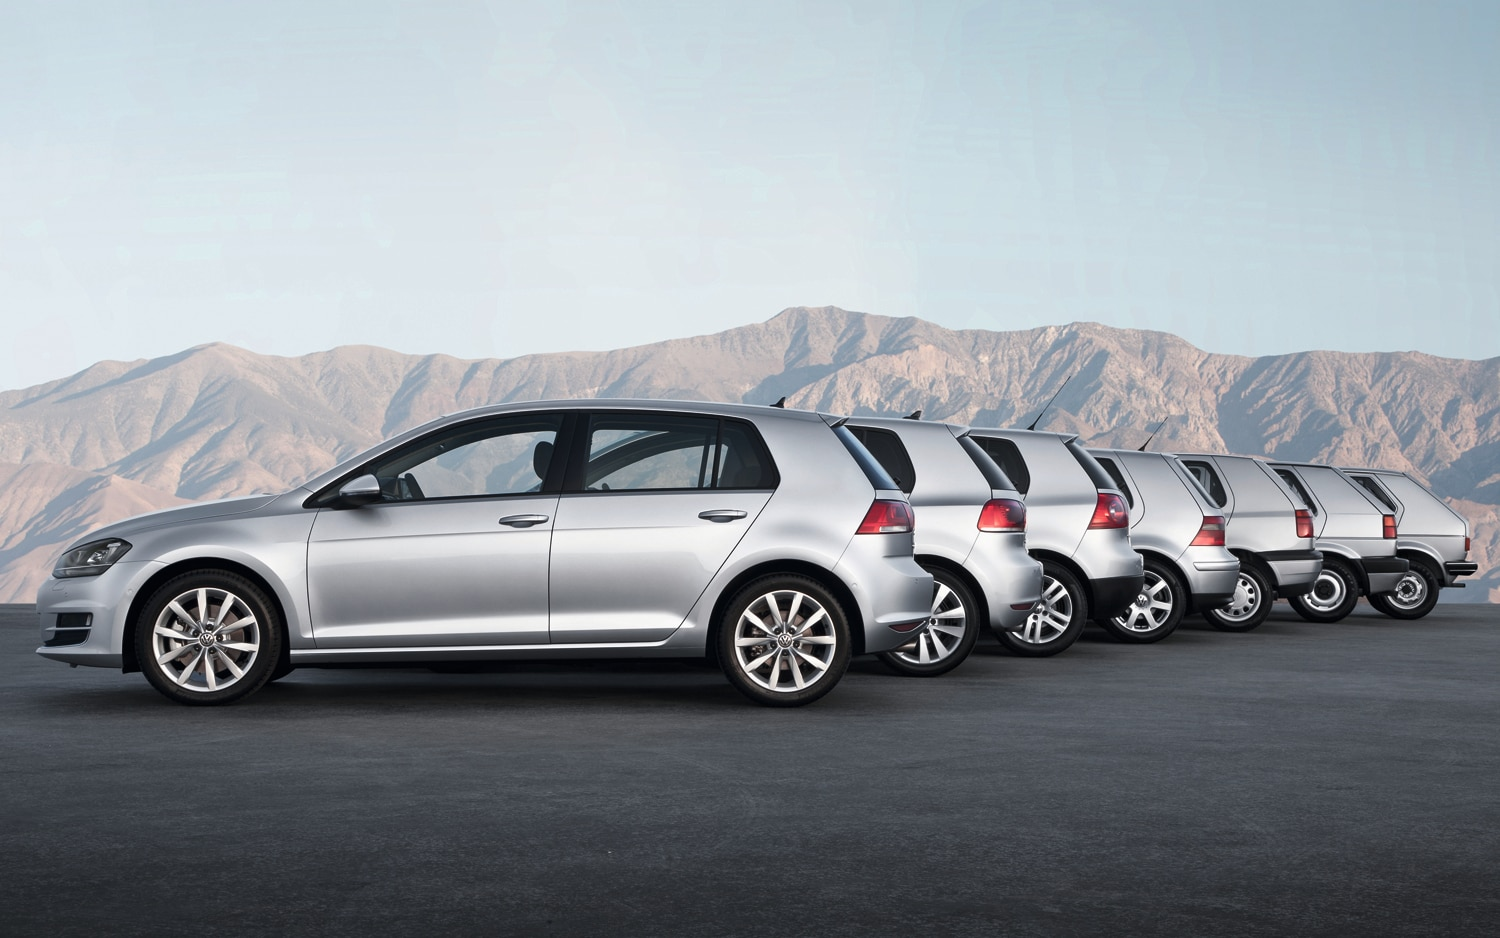 2013 Volkswagen Golf Model Chronology1